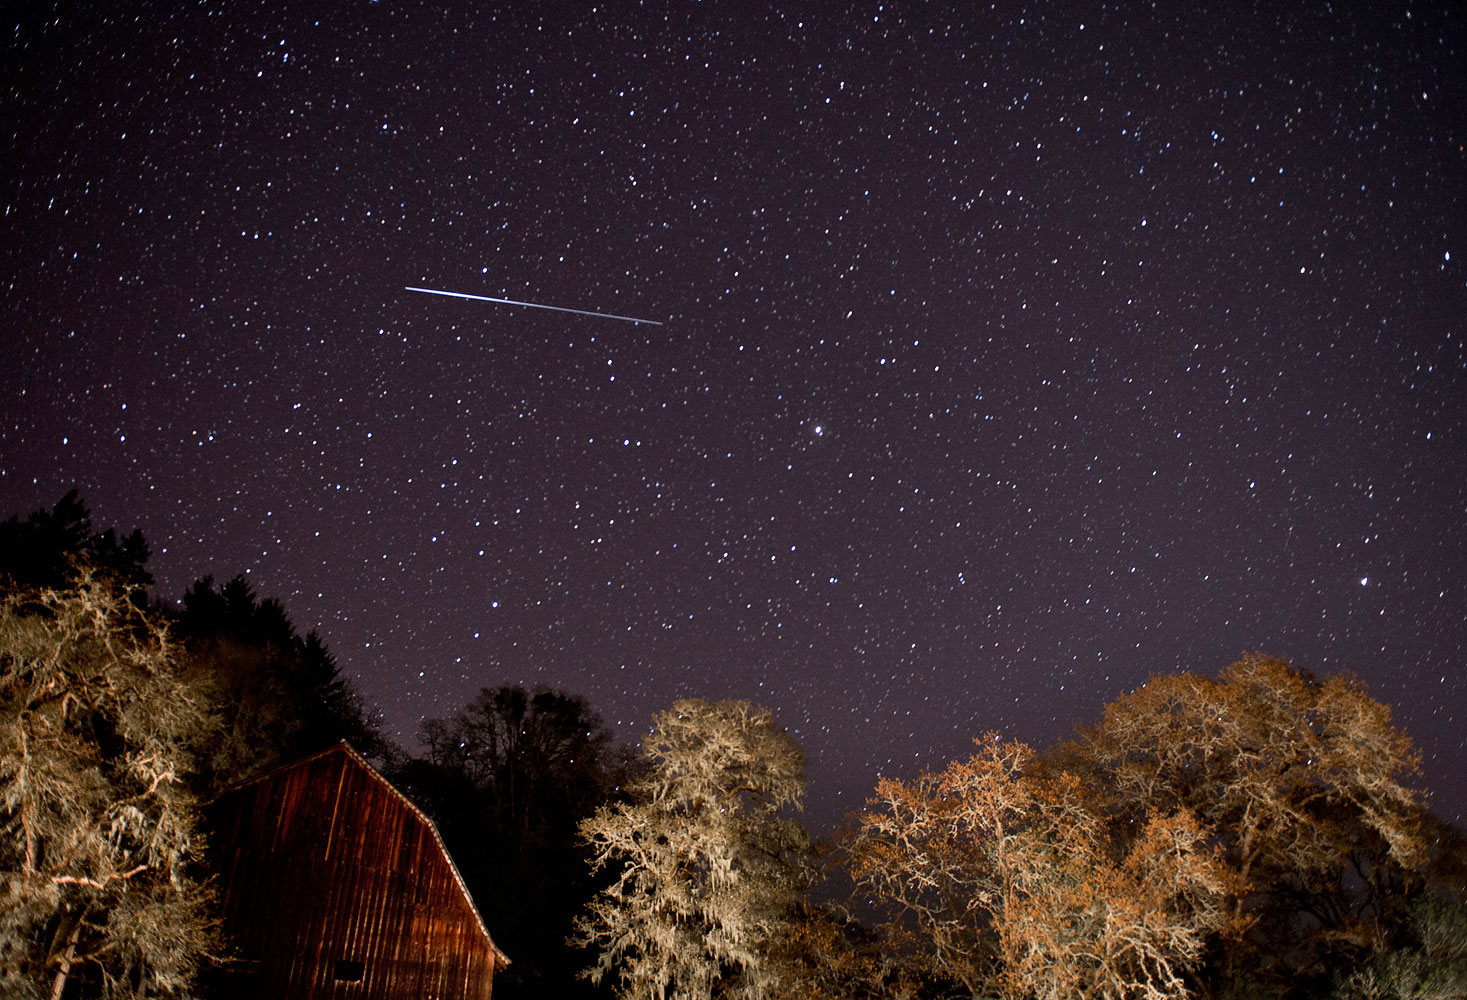 A meteor from the Lyrid meteor shower streaks through the sky above a barn along a country road near Oakland, Ore. April 21, 2012.